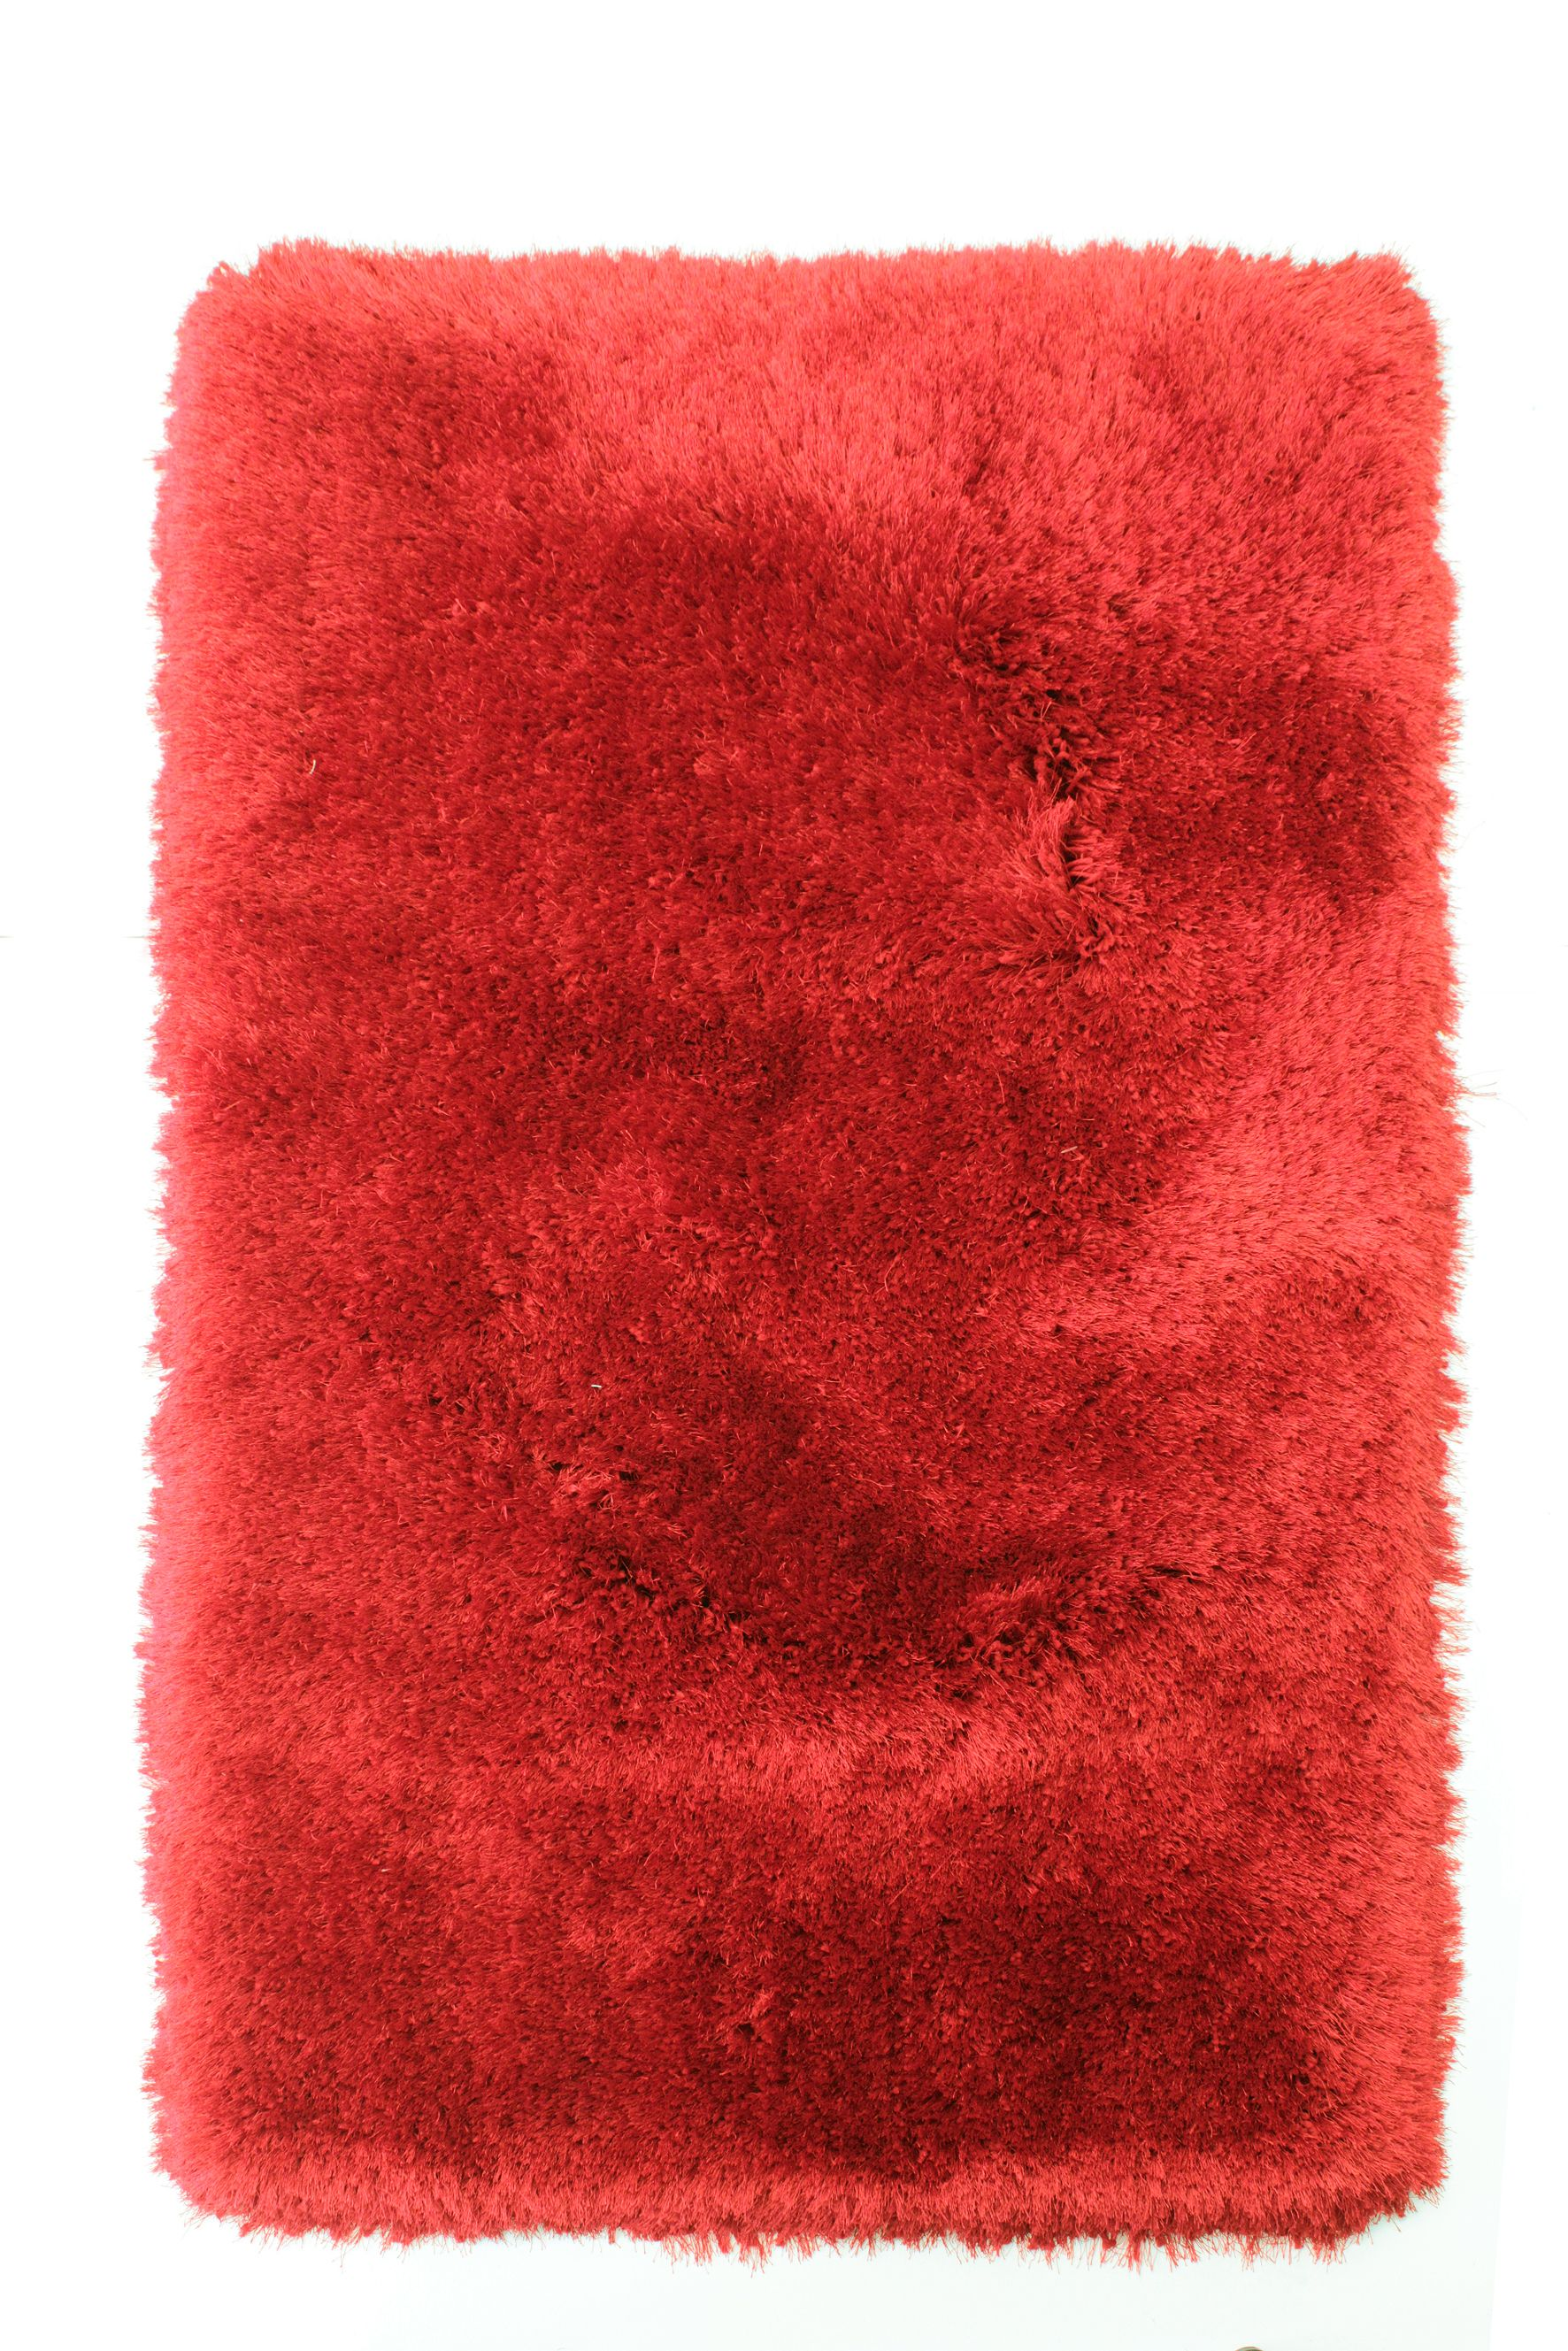 Flair Rugs Flair Rugs Pearl Red Round Rug 150X150